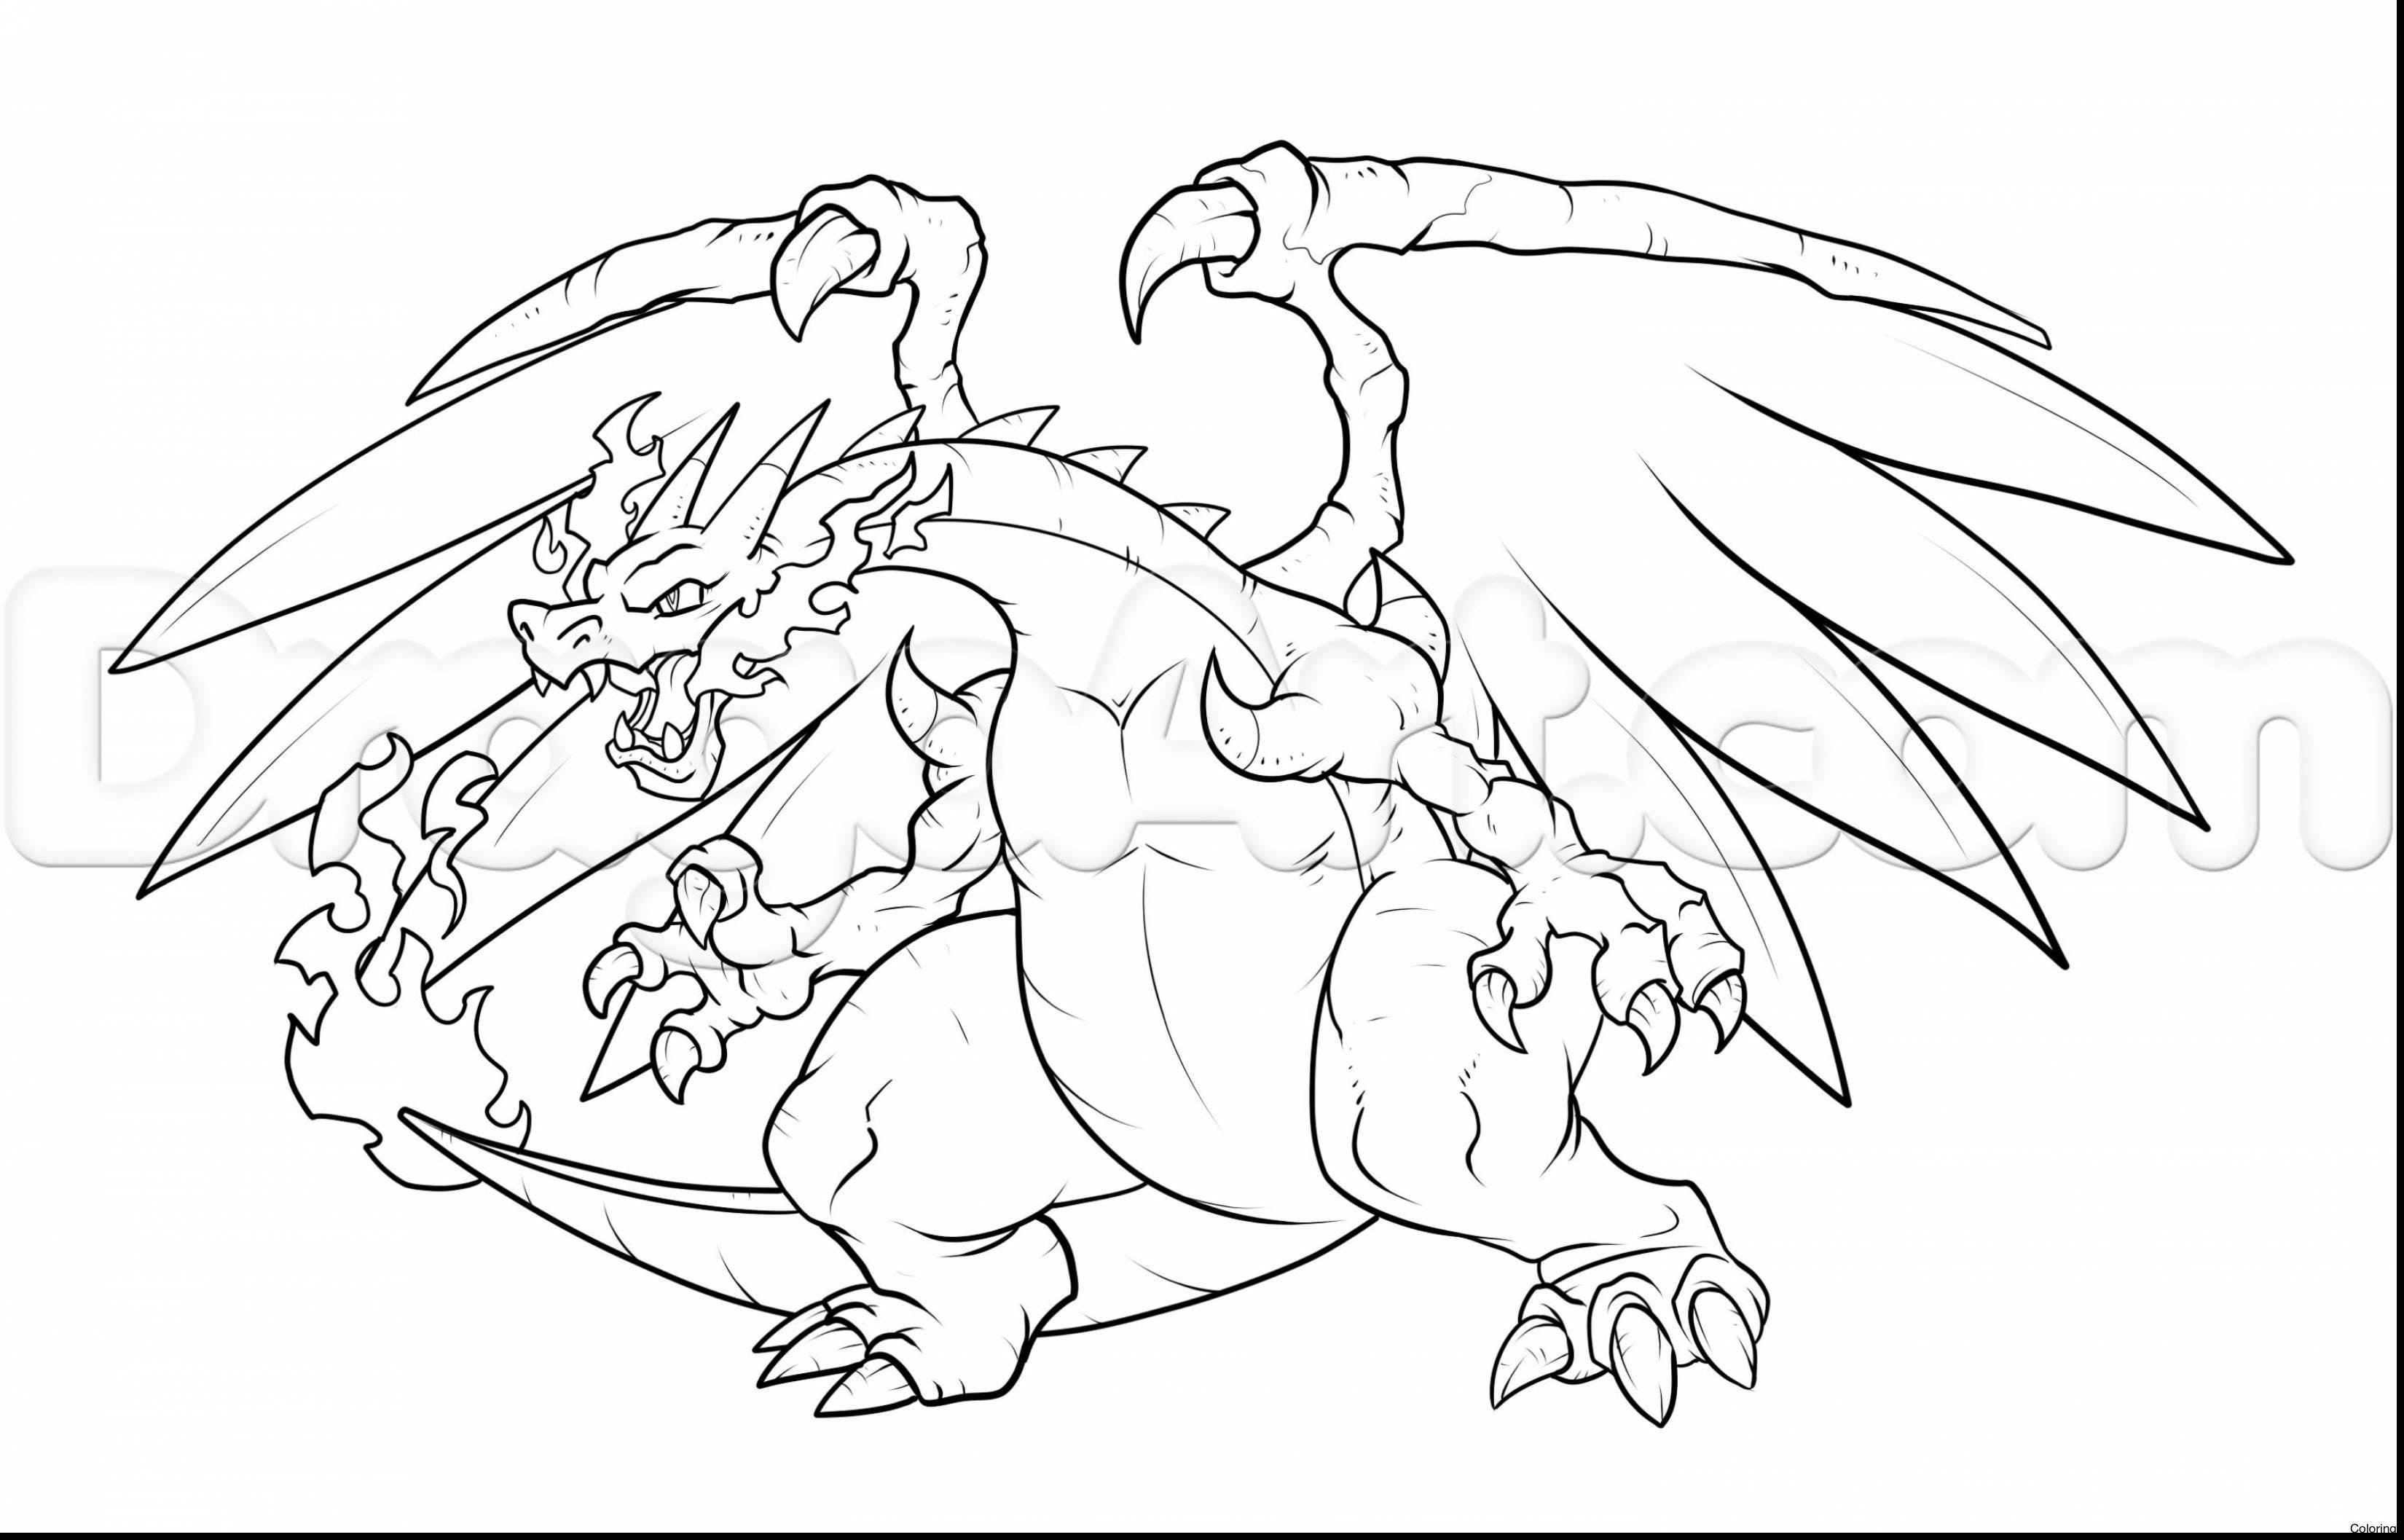 Coloring Pages Pokemon Charmander at GetDrawings.com | Free ...